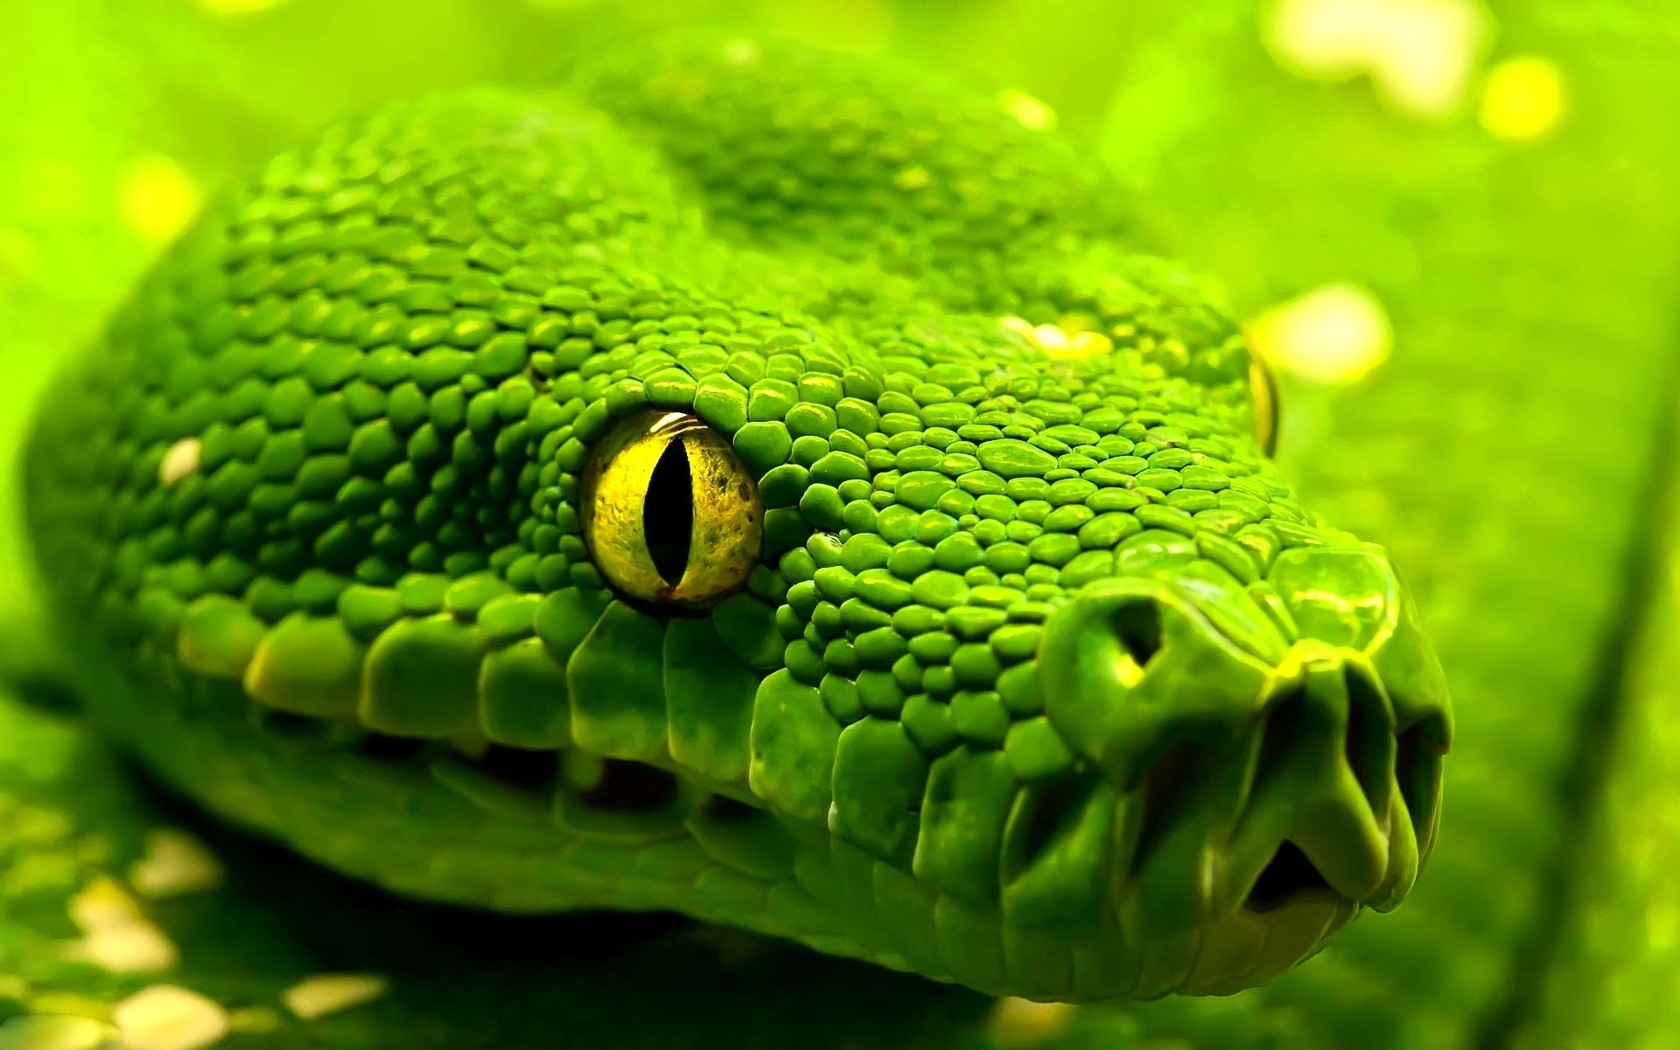 Αποτέλεσμα εικόνας για green snake